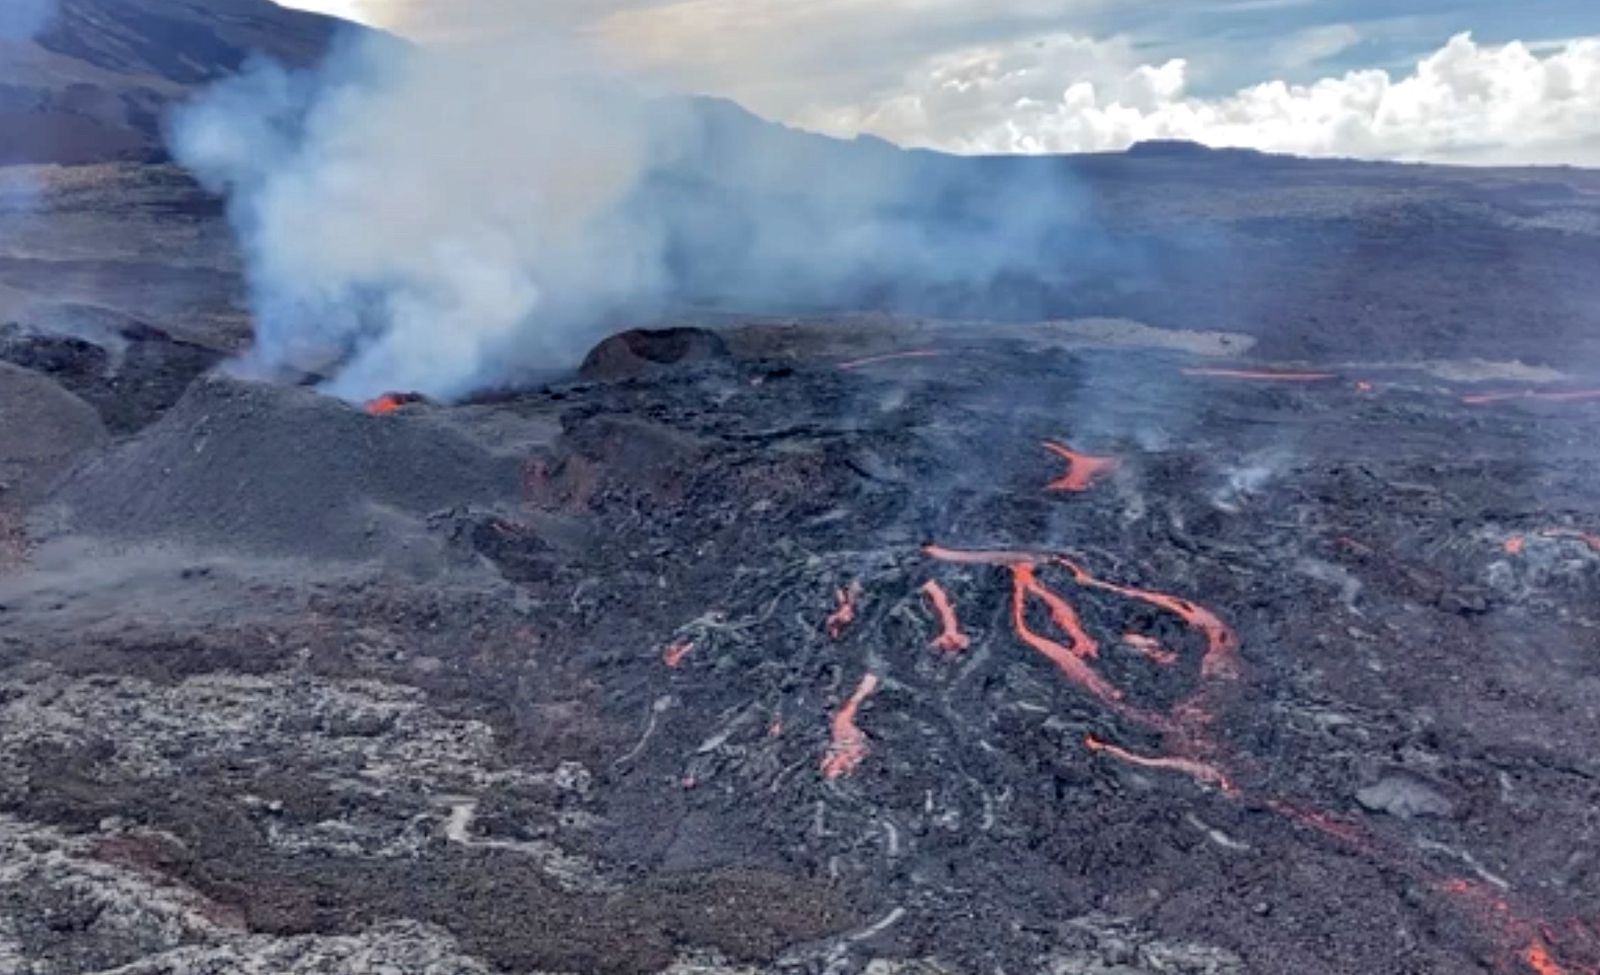 Piton de La Fournaise - photos of the OVPF during the flyby of 04.16.2021 (pity that the sharpness of the photos leaves something to be desired)